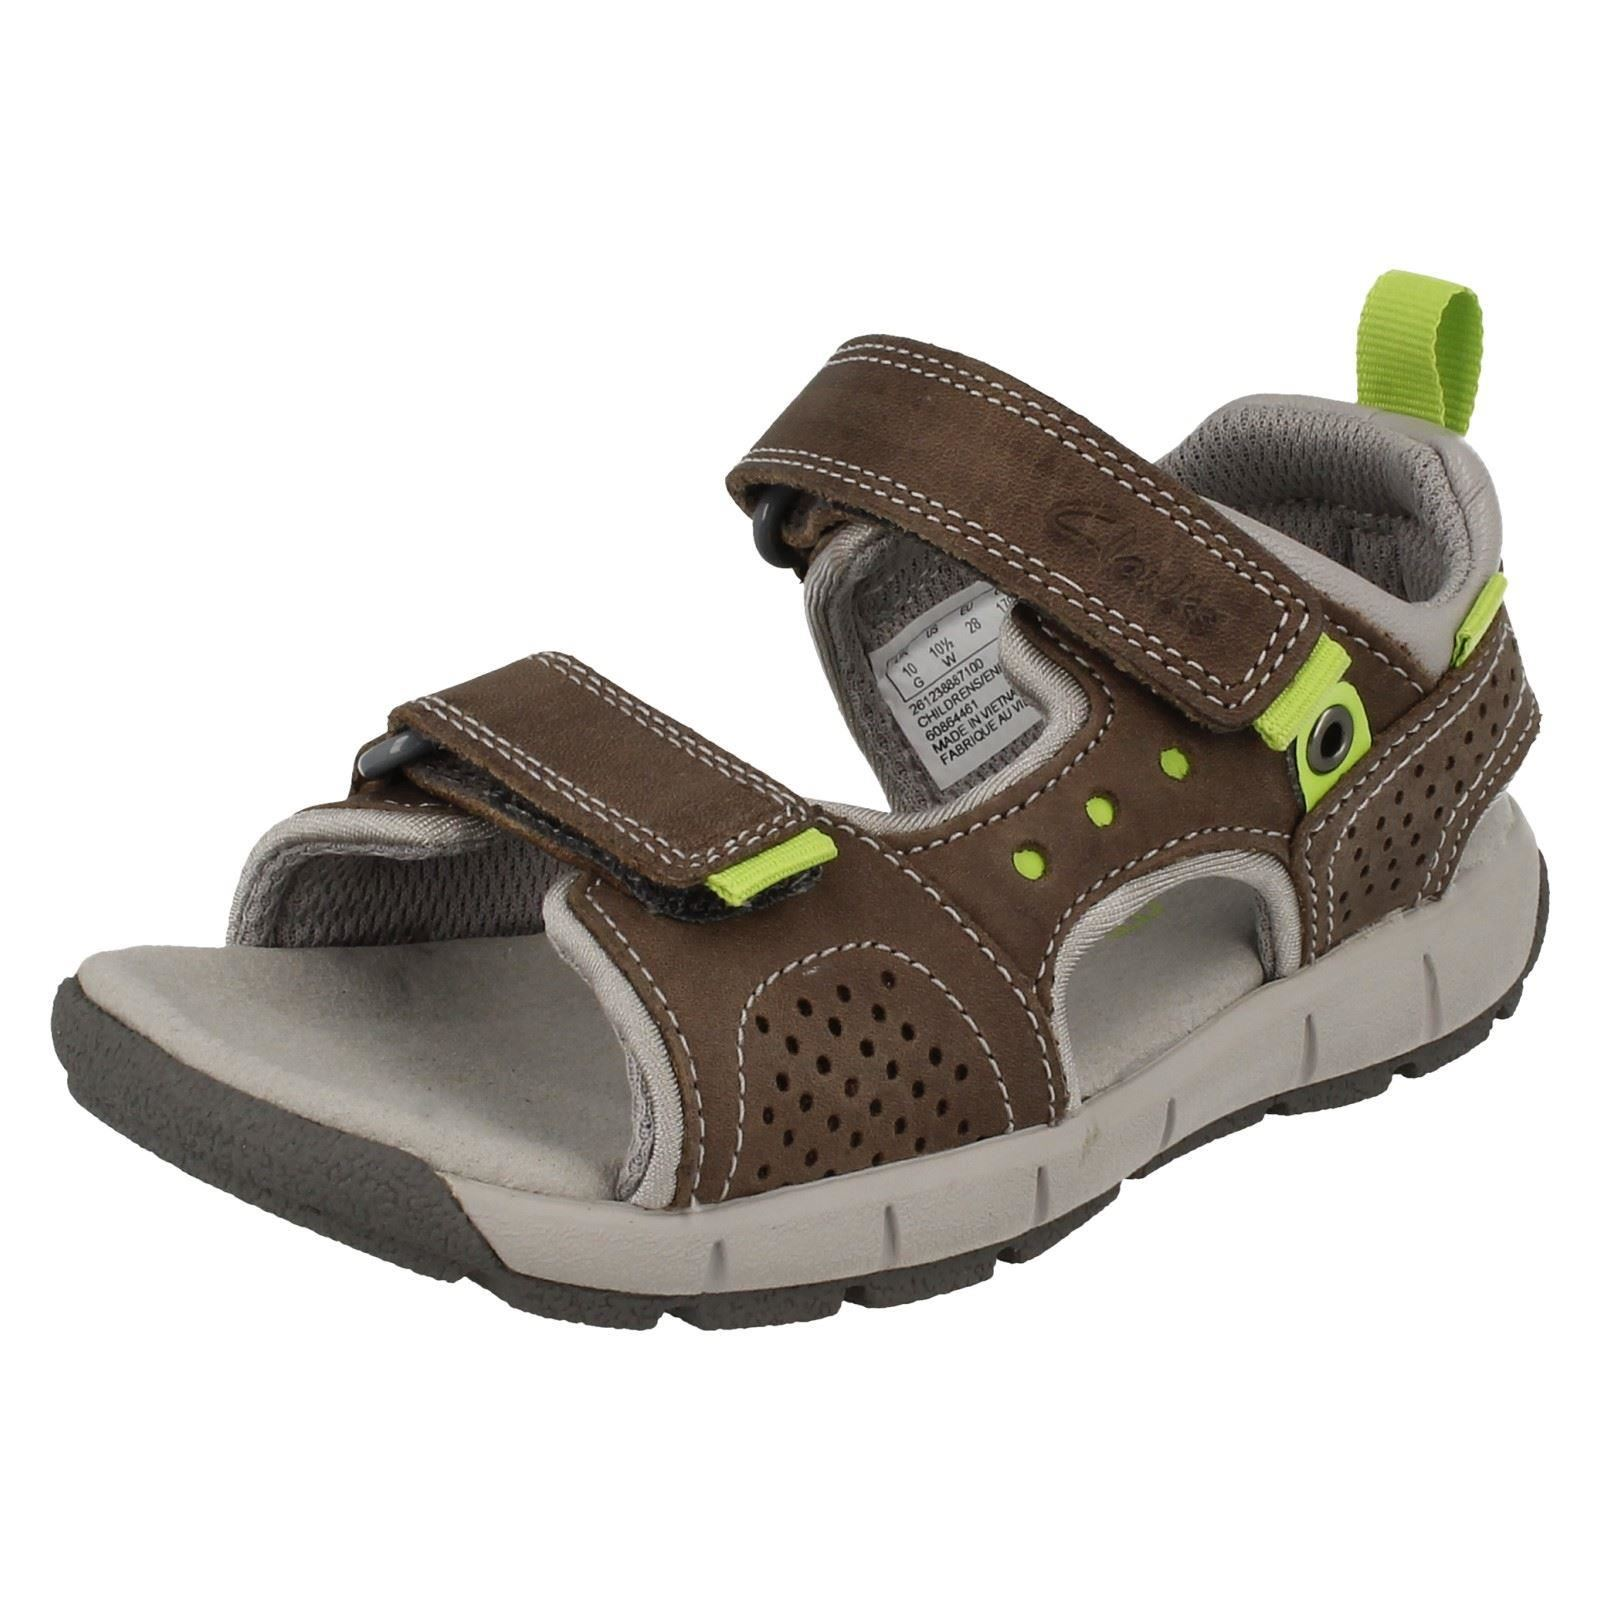 Details about Clarks Boys Casual Summer Sandals Jolly Wild